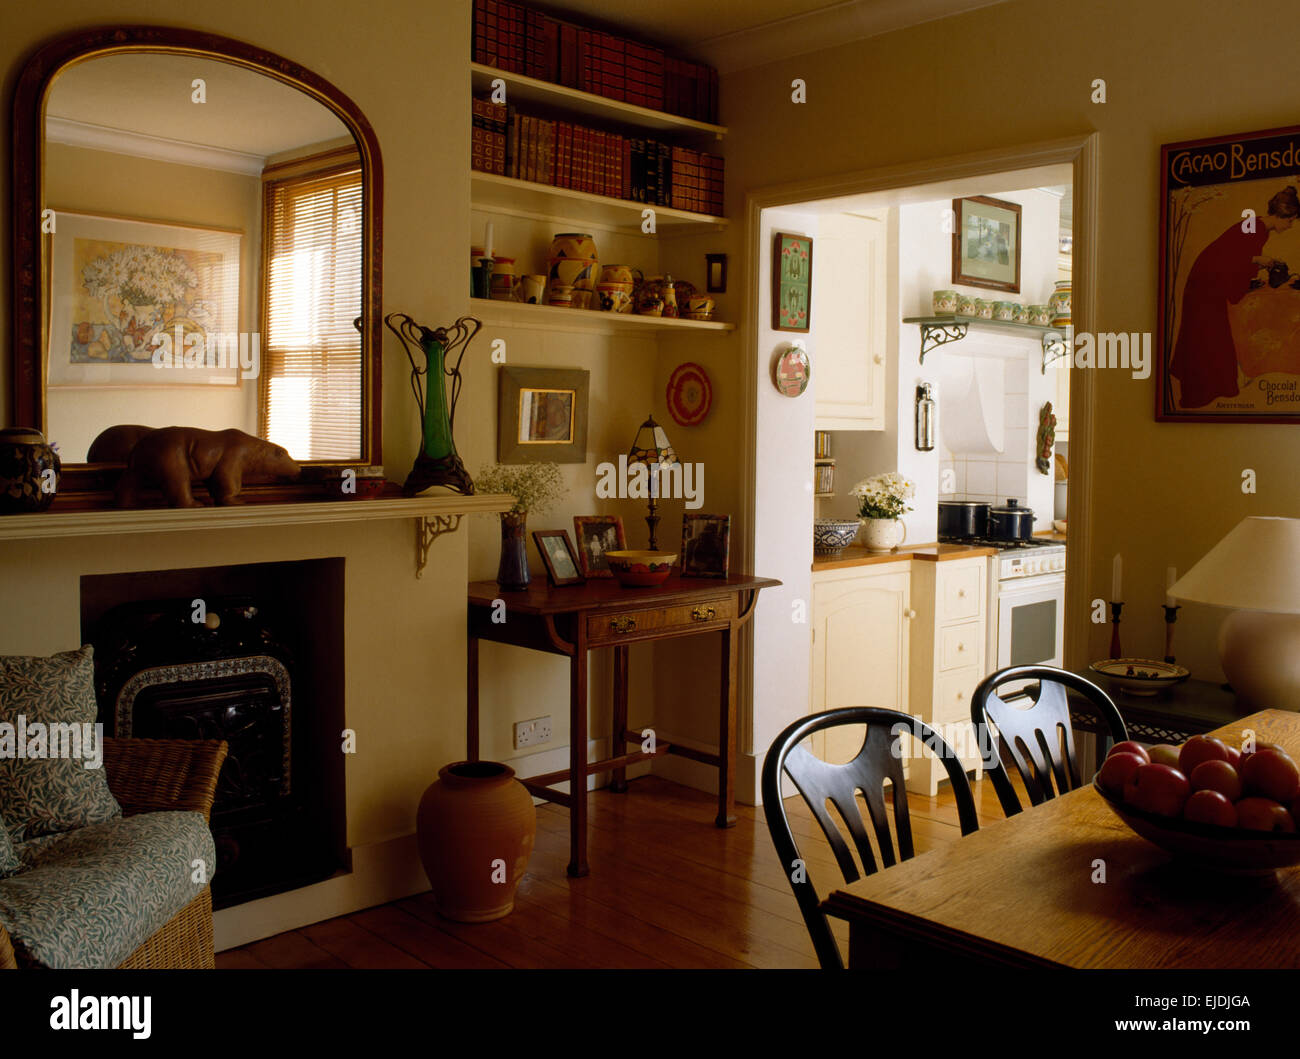 Victorian Mirror Above Fireplace In Nineties Dining Room With Doorway Stock Photo Alamy